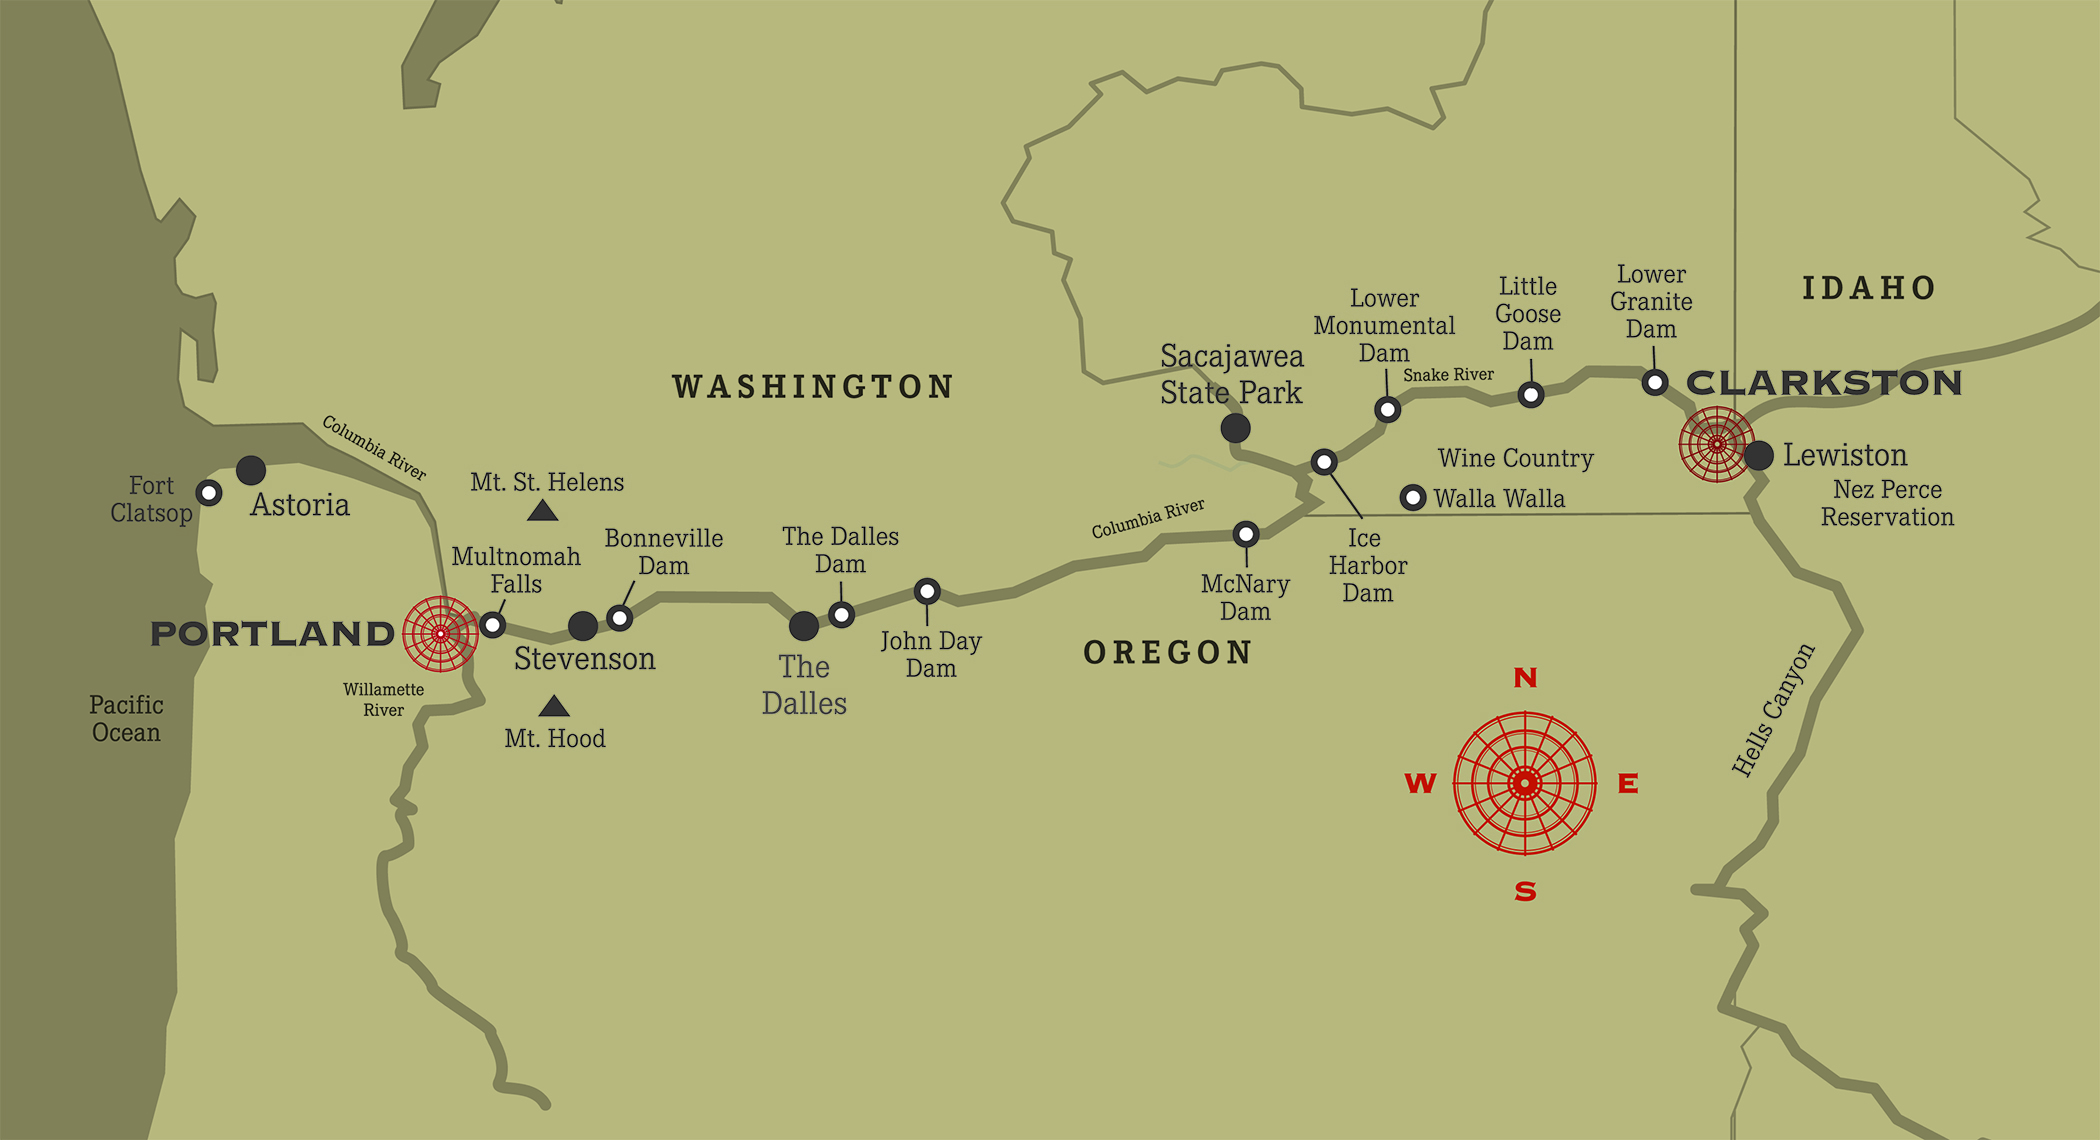 an analysis of the oregon trail in the american expedition age Carson left home in rural present-day missouri at age 16 to become a mountain man and trapper in the west and spurred a migration of settlers westward to oregon via the oregon trail second expedition, 1843 in 1843 list of american civil war generals kit carson scouts.